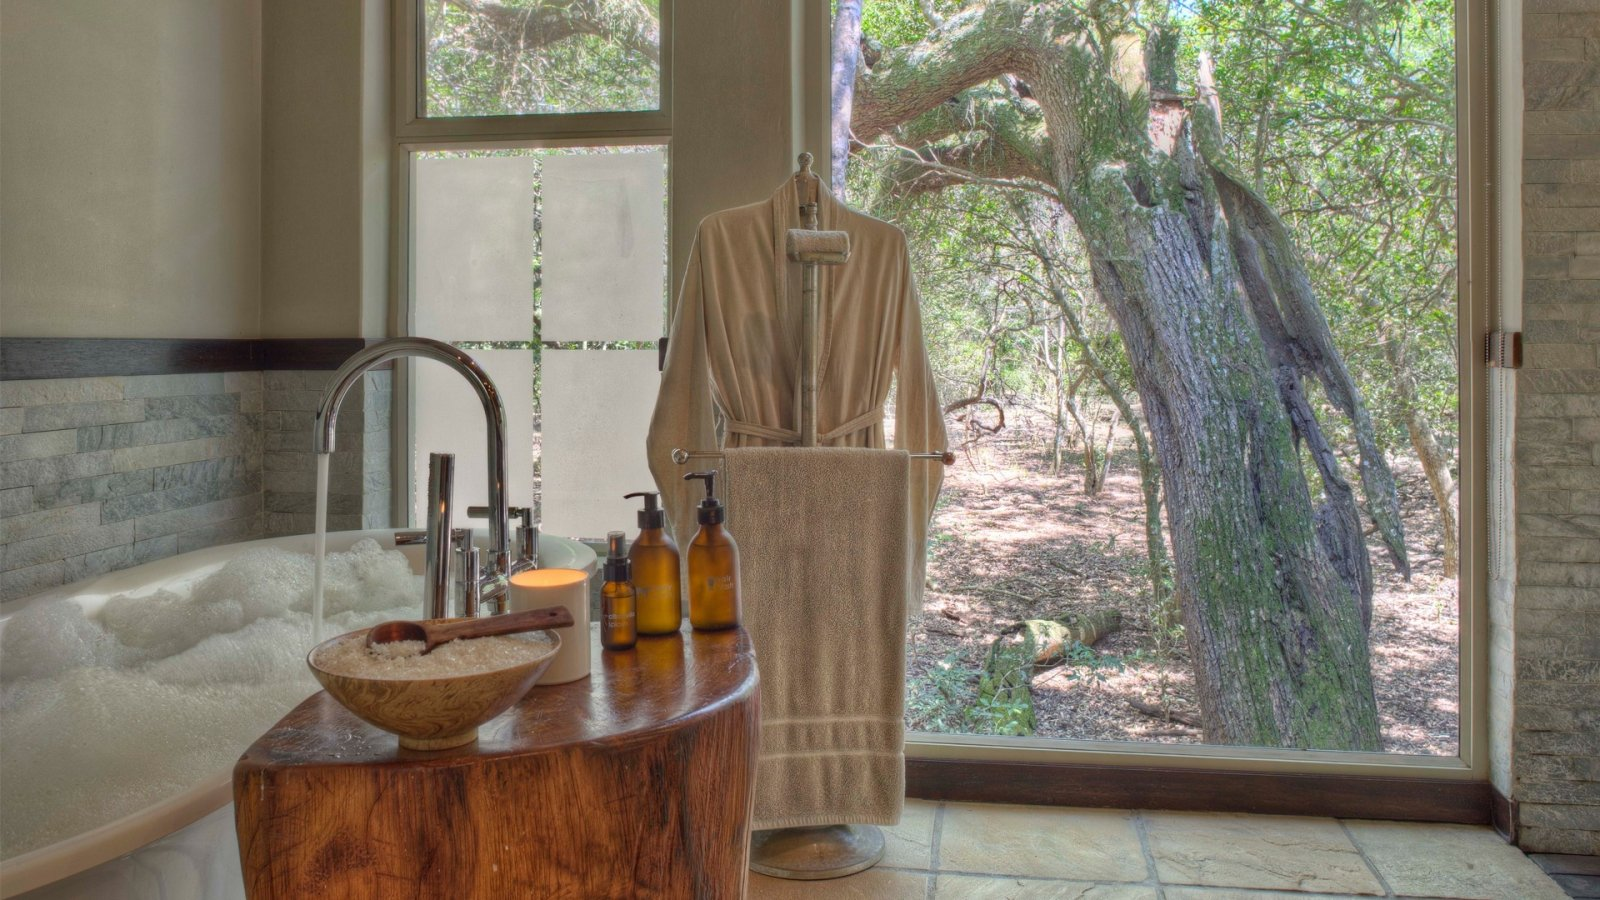 bathroom-overlooking-forest-at-andbeyond-phinda-forest-lodge-on-a-luxury-safari-in-south-africa.jpg